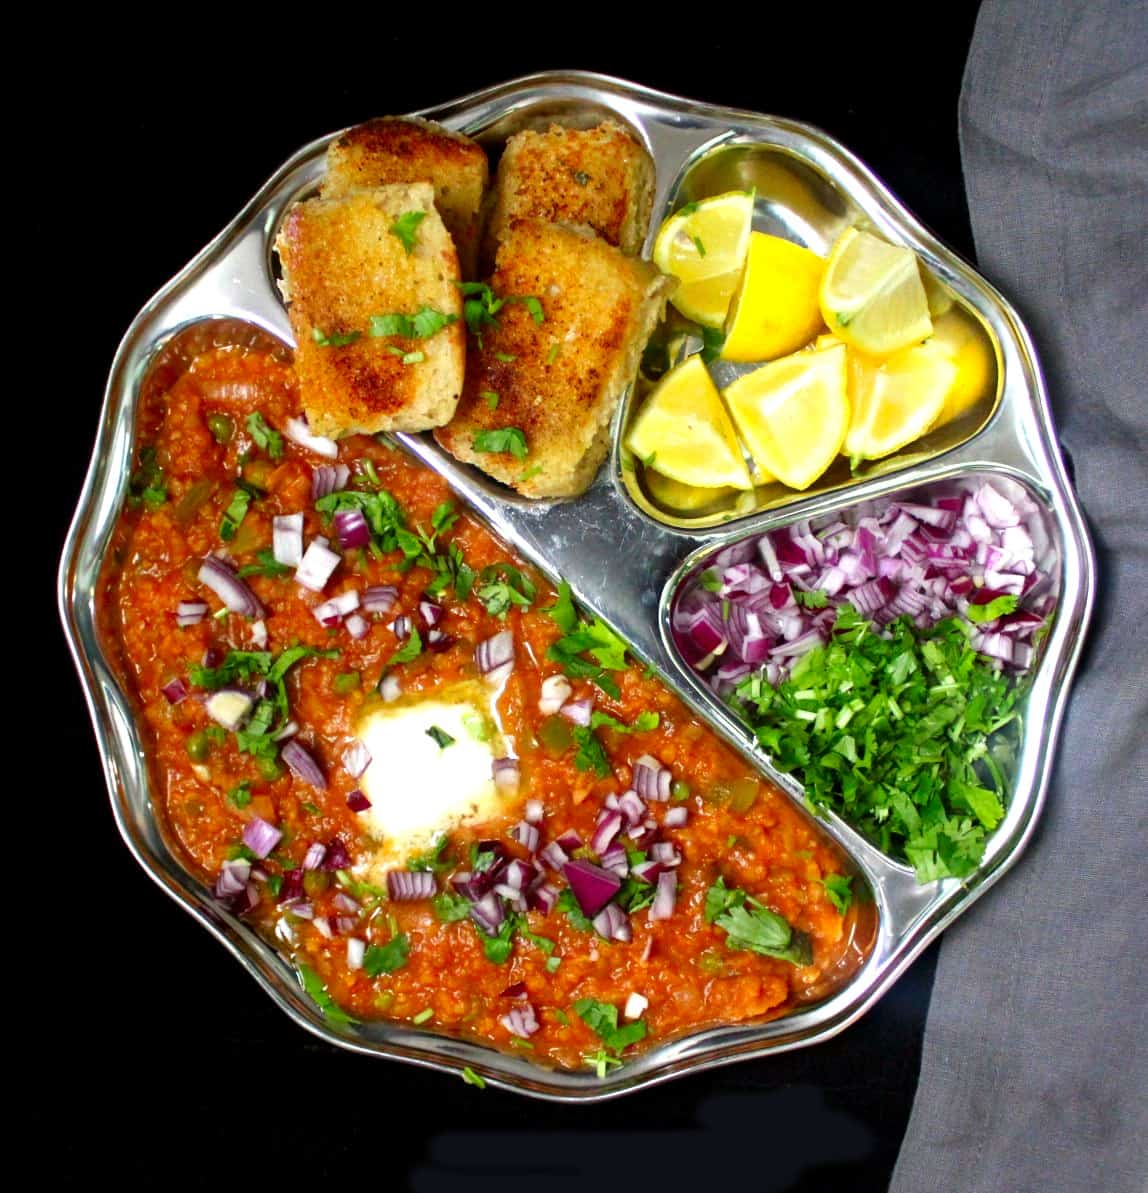 Photo of pav bhaji served in a steel plate with compartments, with toasted, buttered pav, lemons, cilantro and onions.